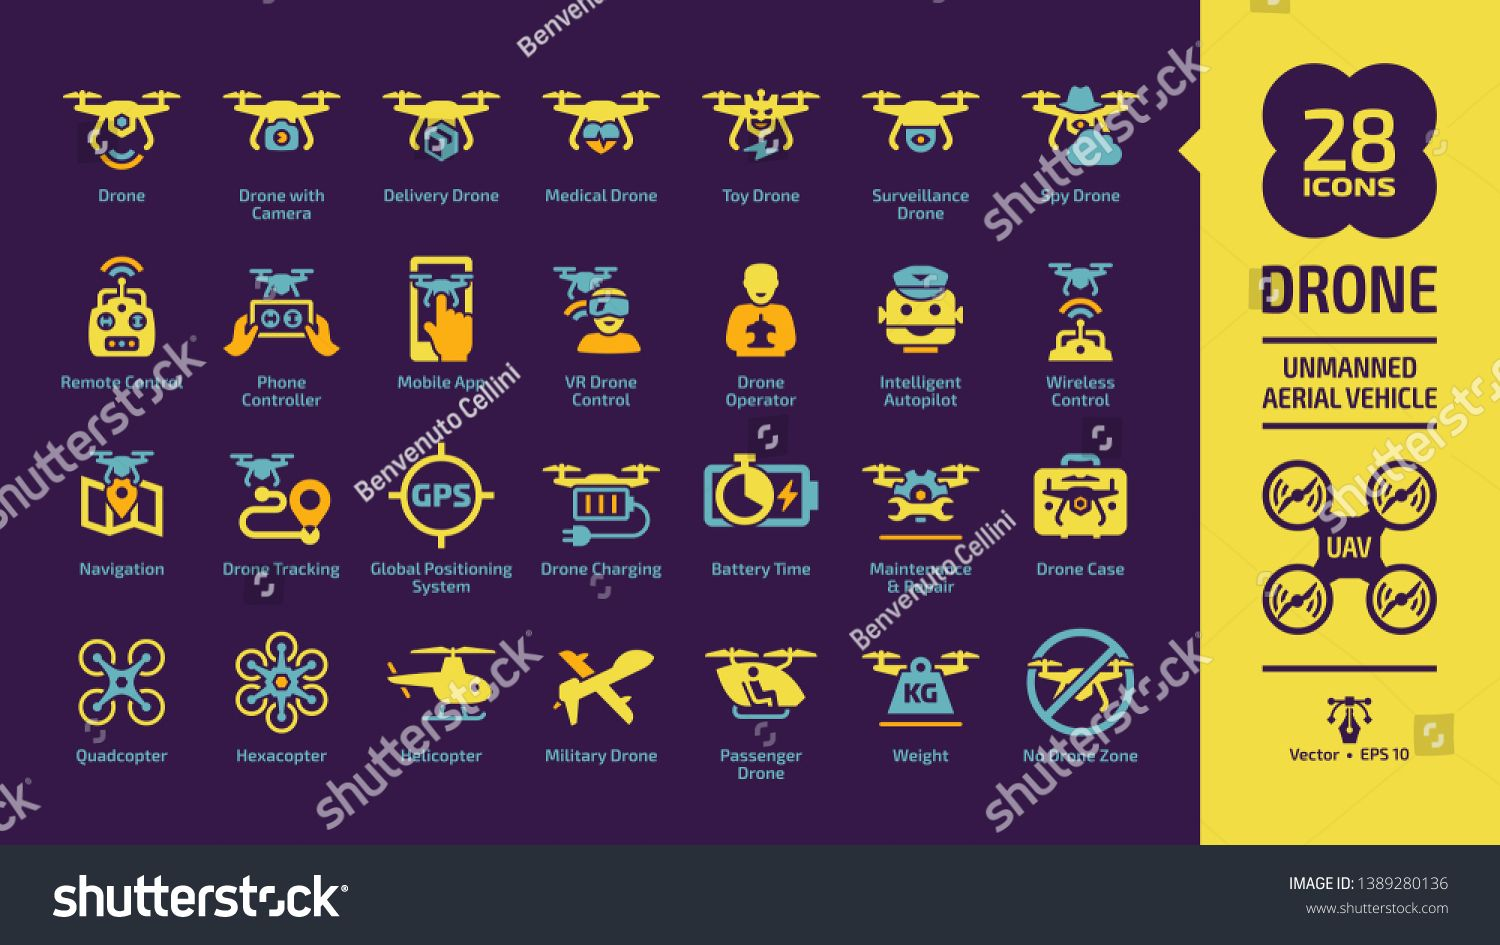 Drone unmanned aerial vehicle icon set on a violet